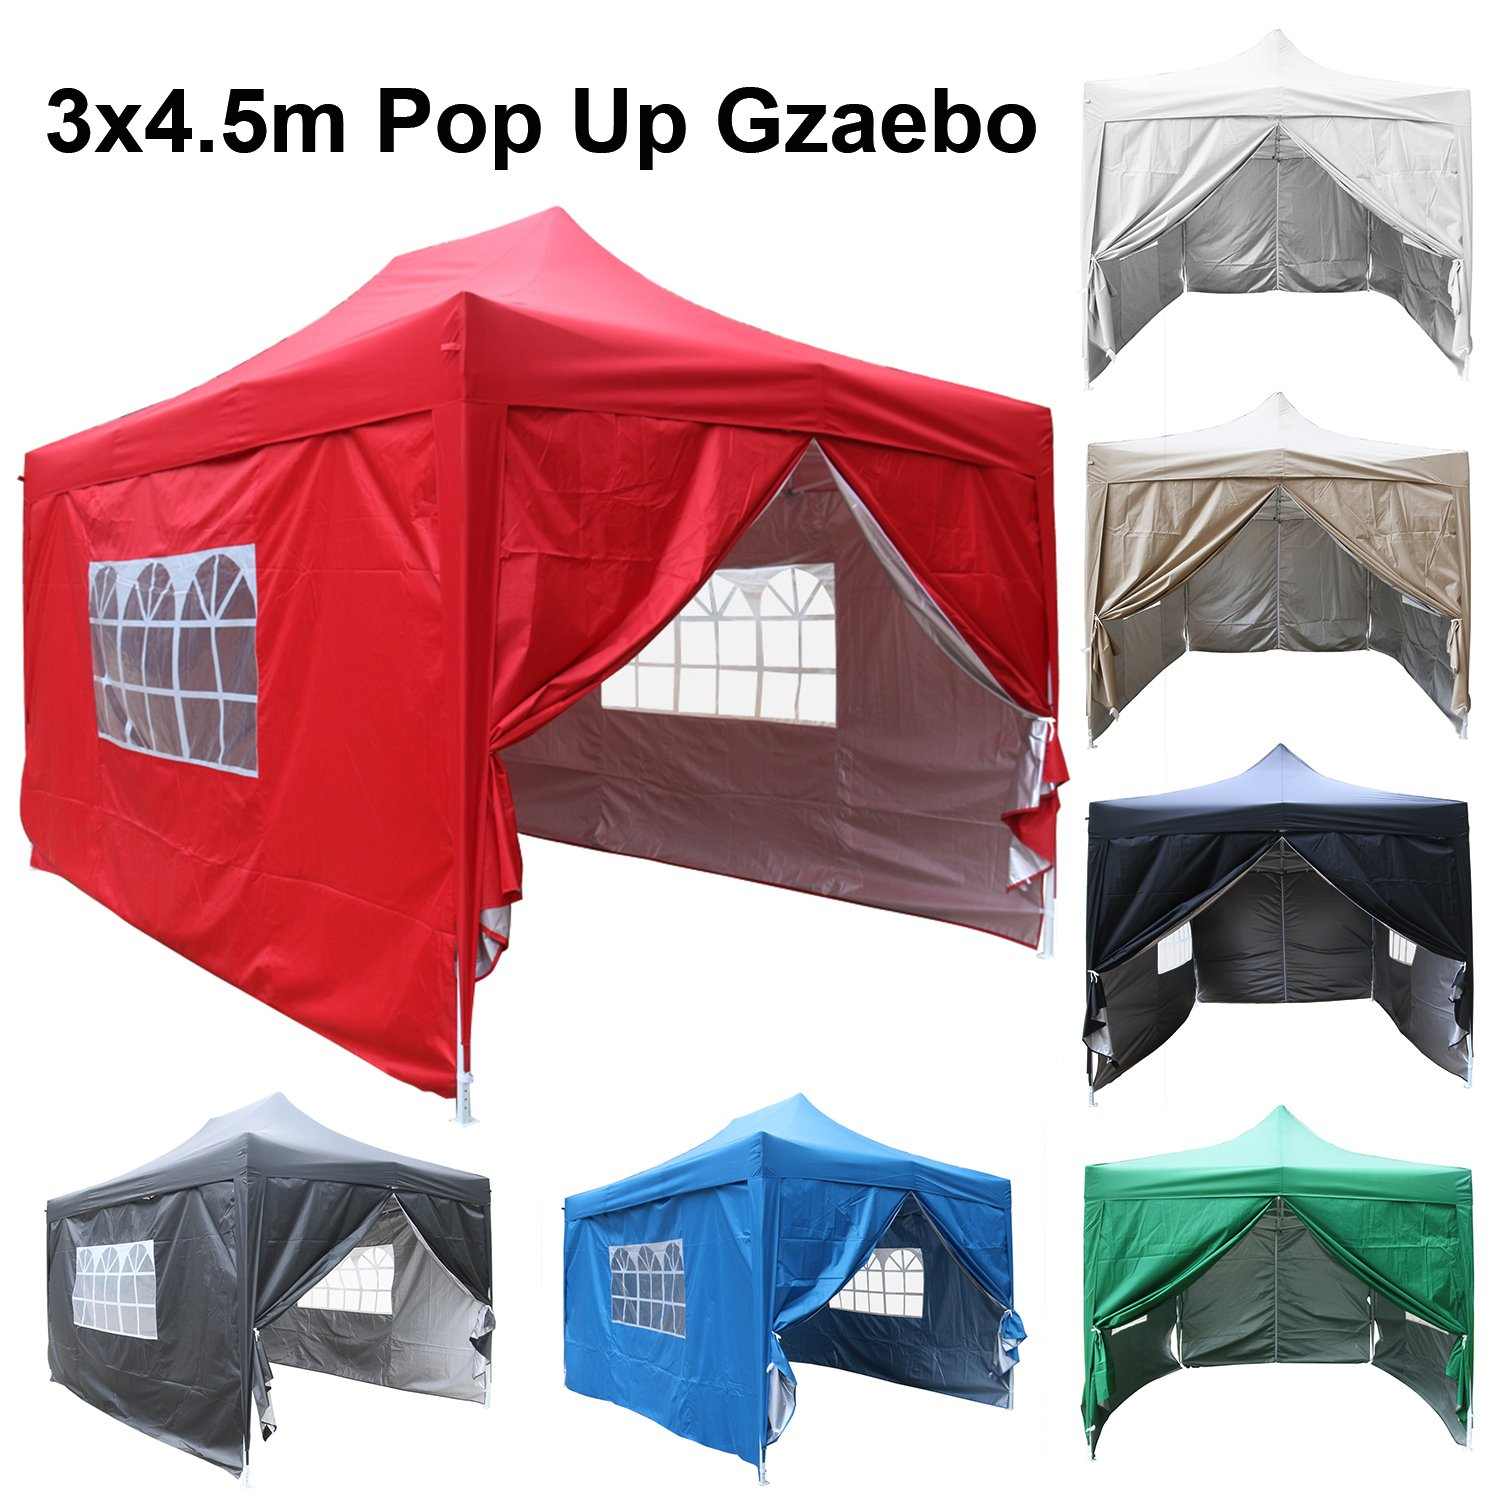 Beige 4 x Side Panels and Carry Case Greenbay 3m x 3m Pop-Up Garden Pop Up Gazebo with 4 x Weight-Bags Choice of Colours